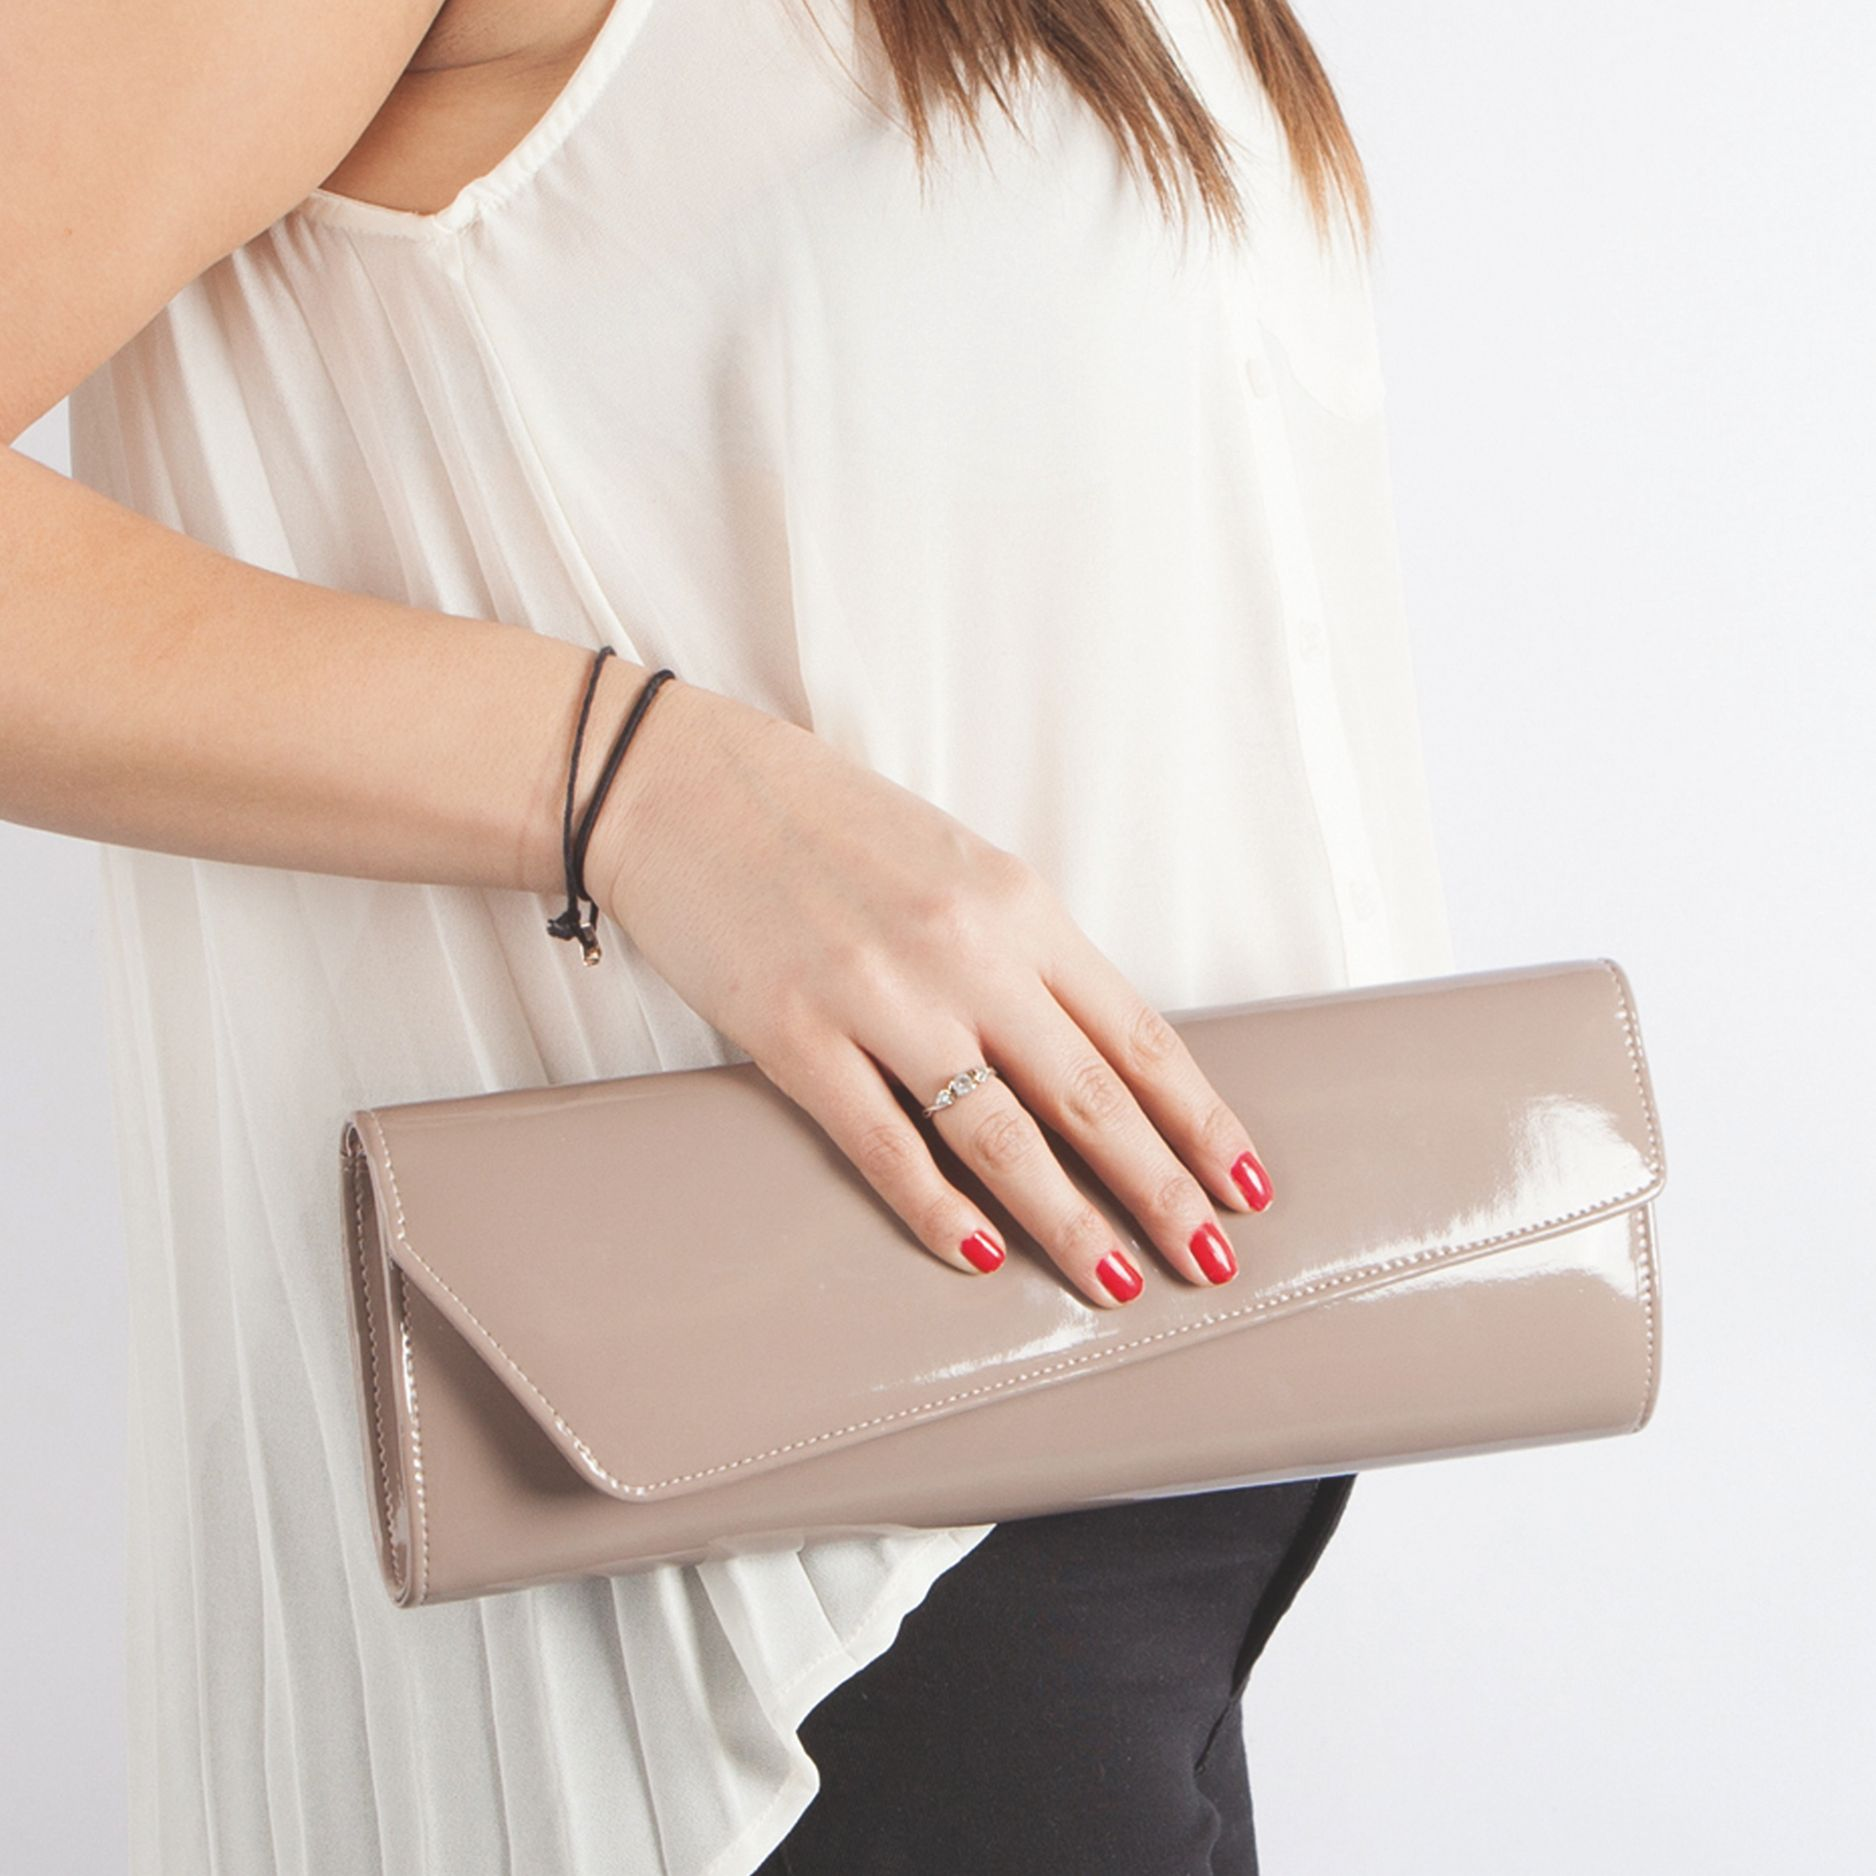 Chrissy clutch bag